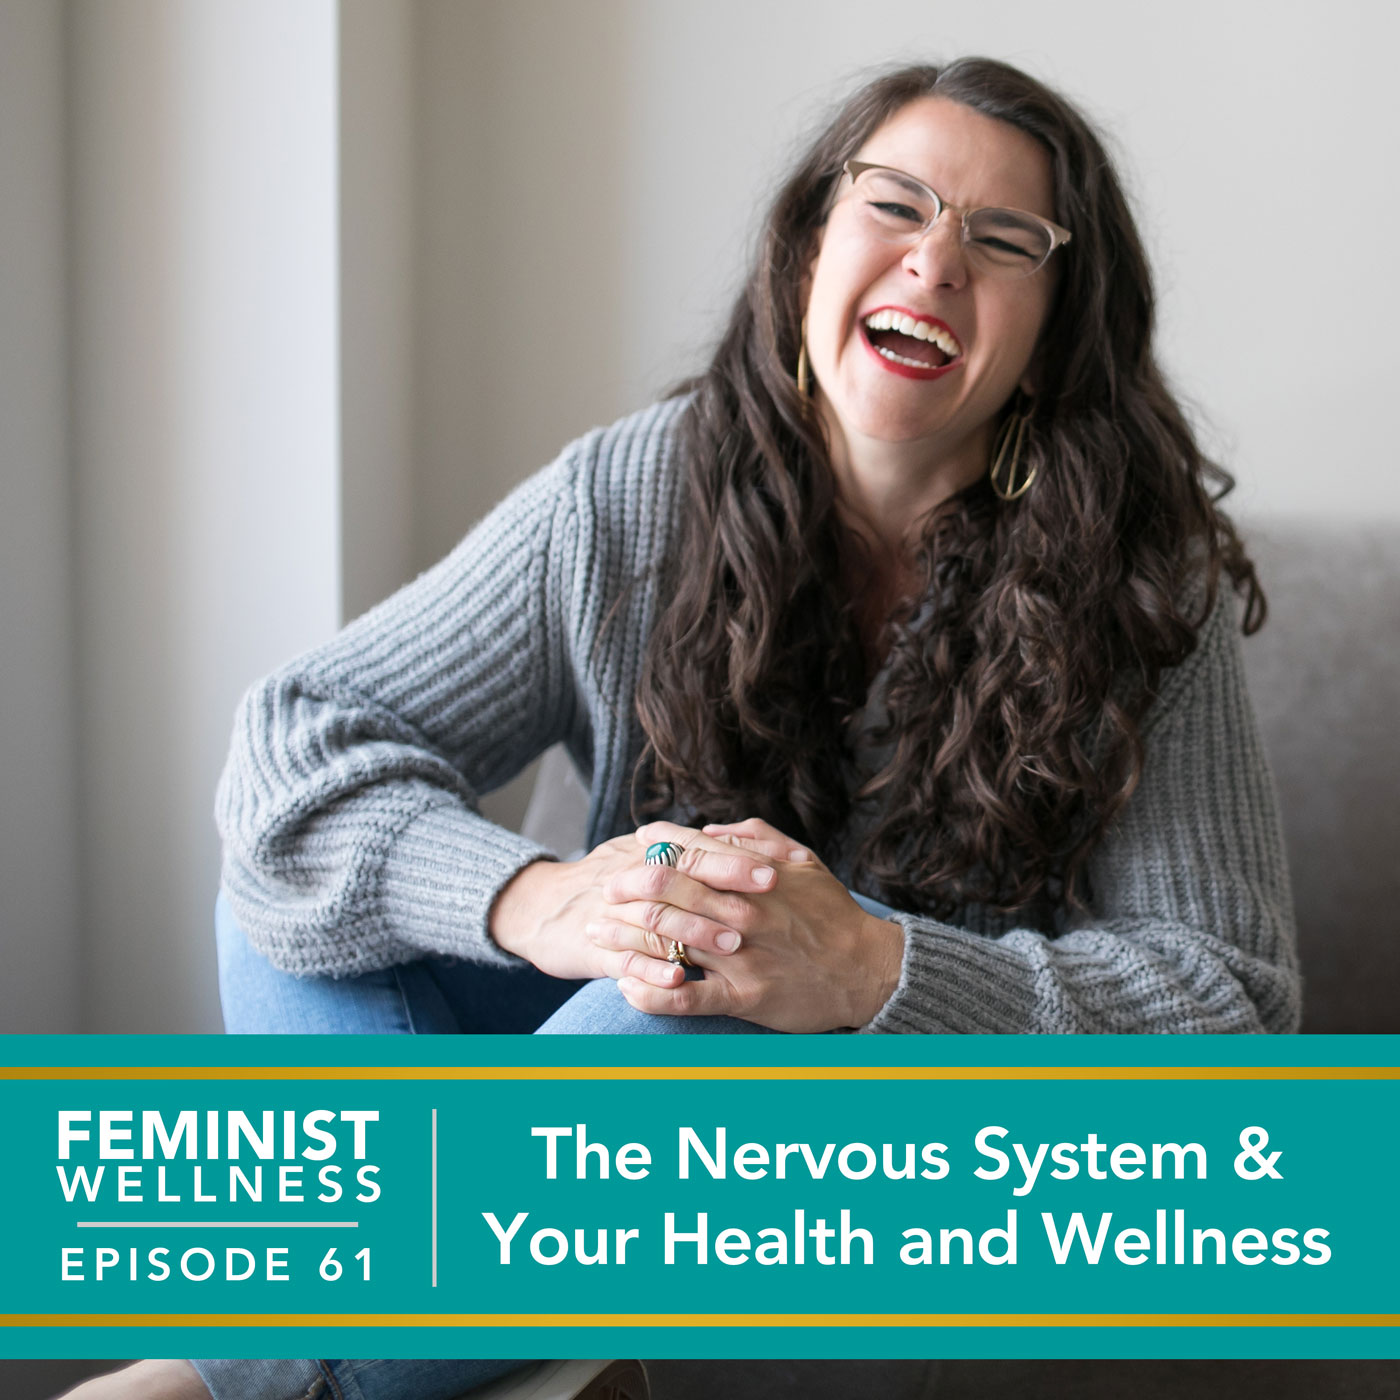 The Nervous System & Your Health and Wellness